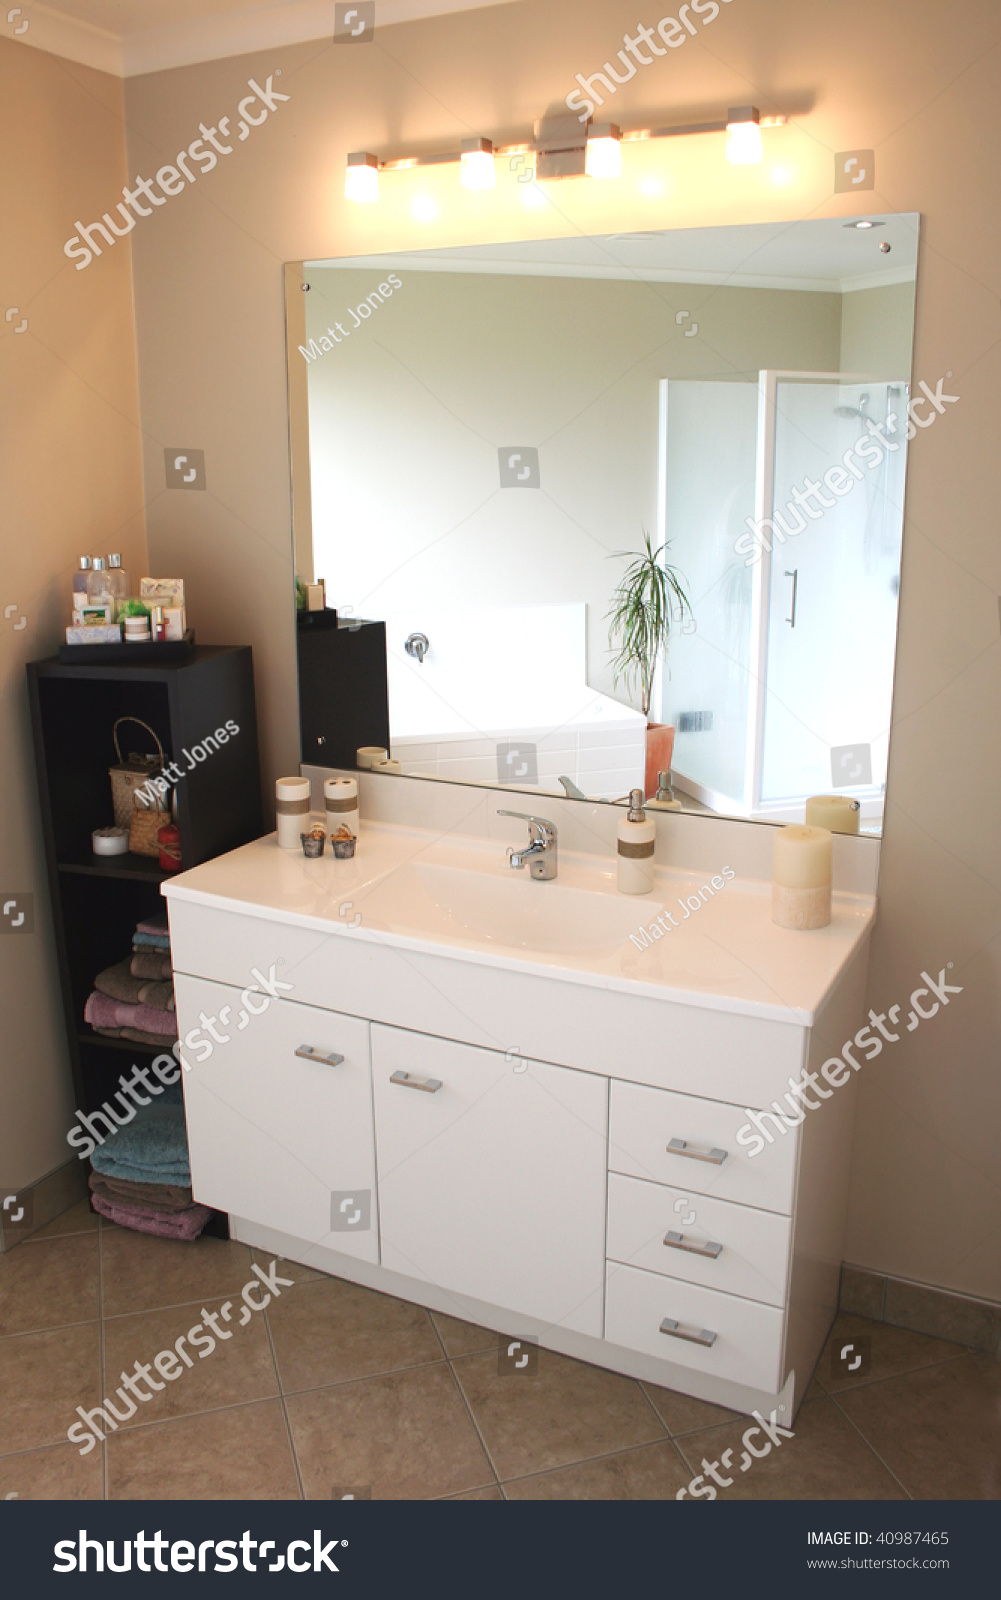 A white and stainless steel modern bathroom vanity mirror and accessories. Bathroom Cabinets With Drawers